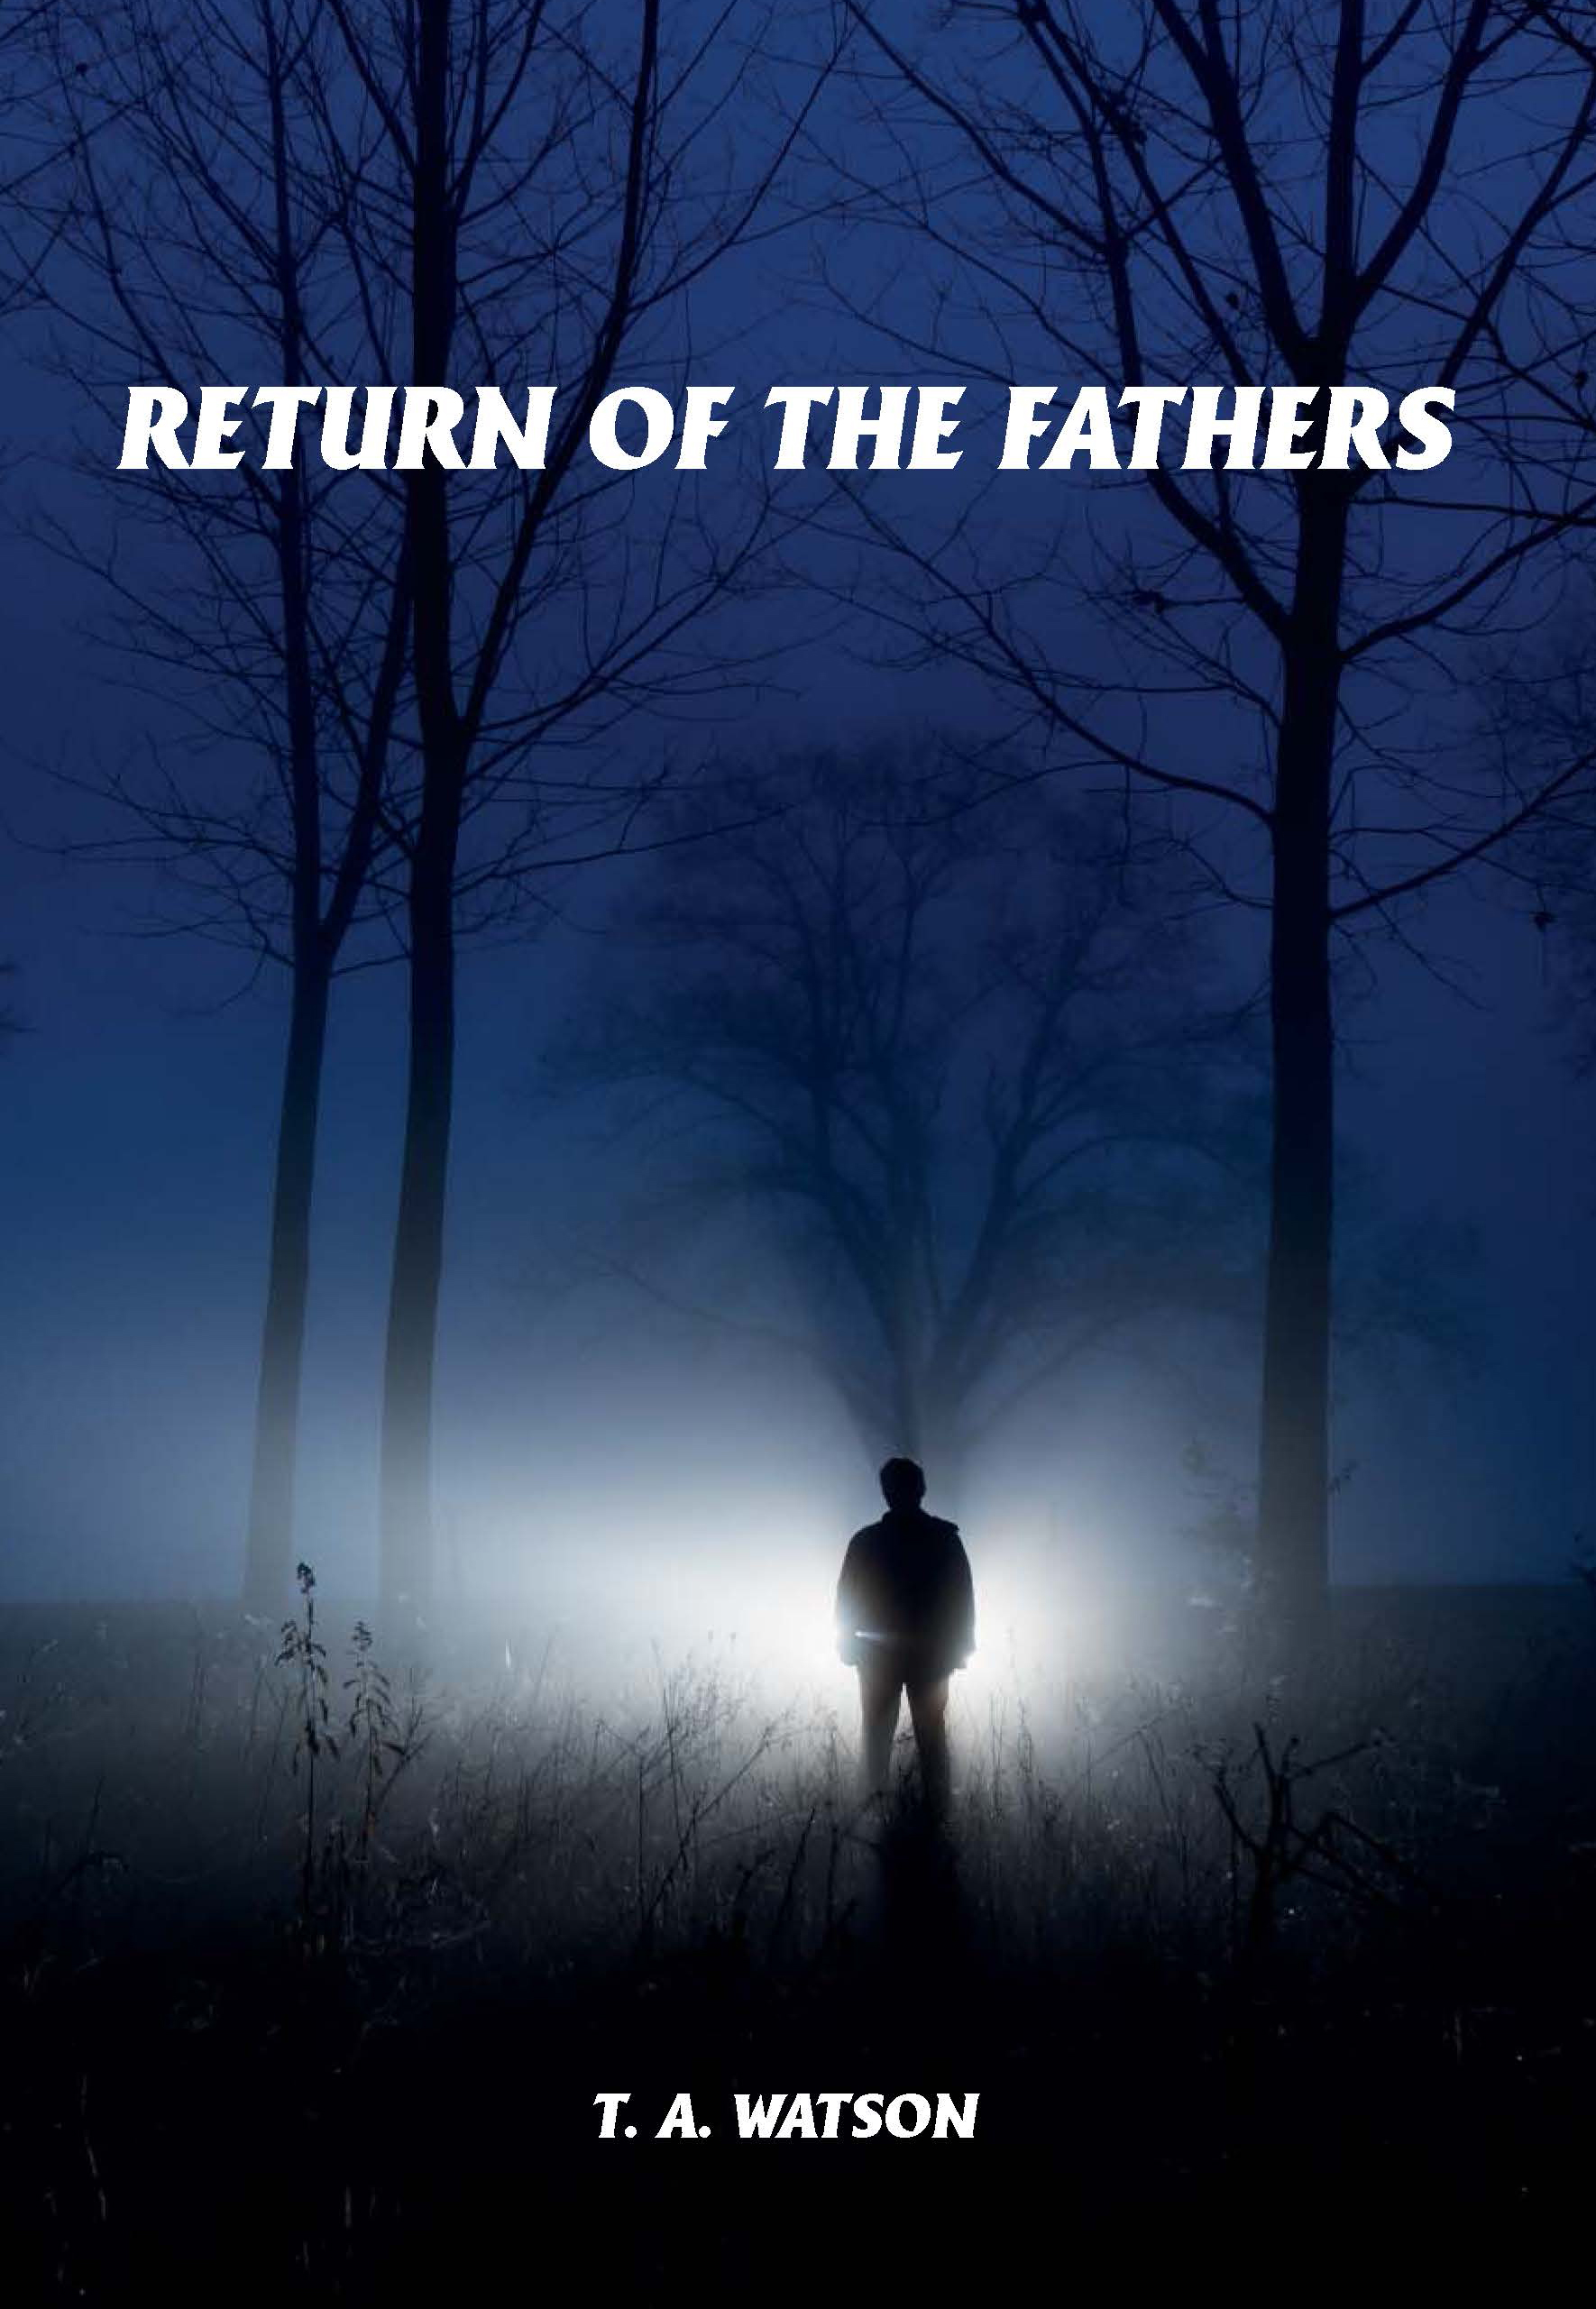 Return of the Fathers